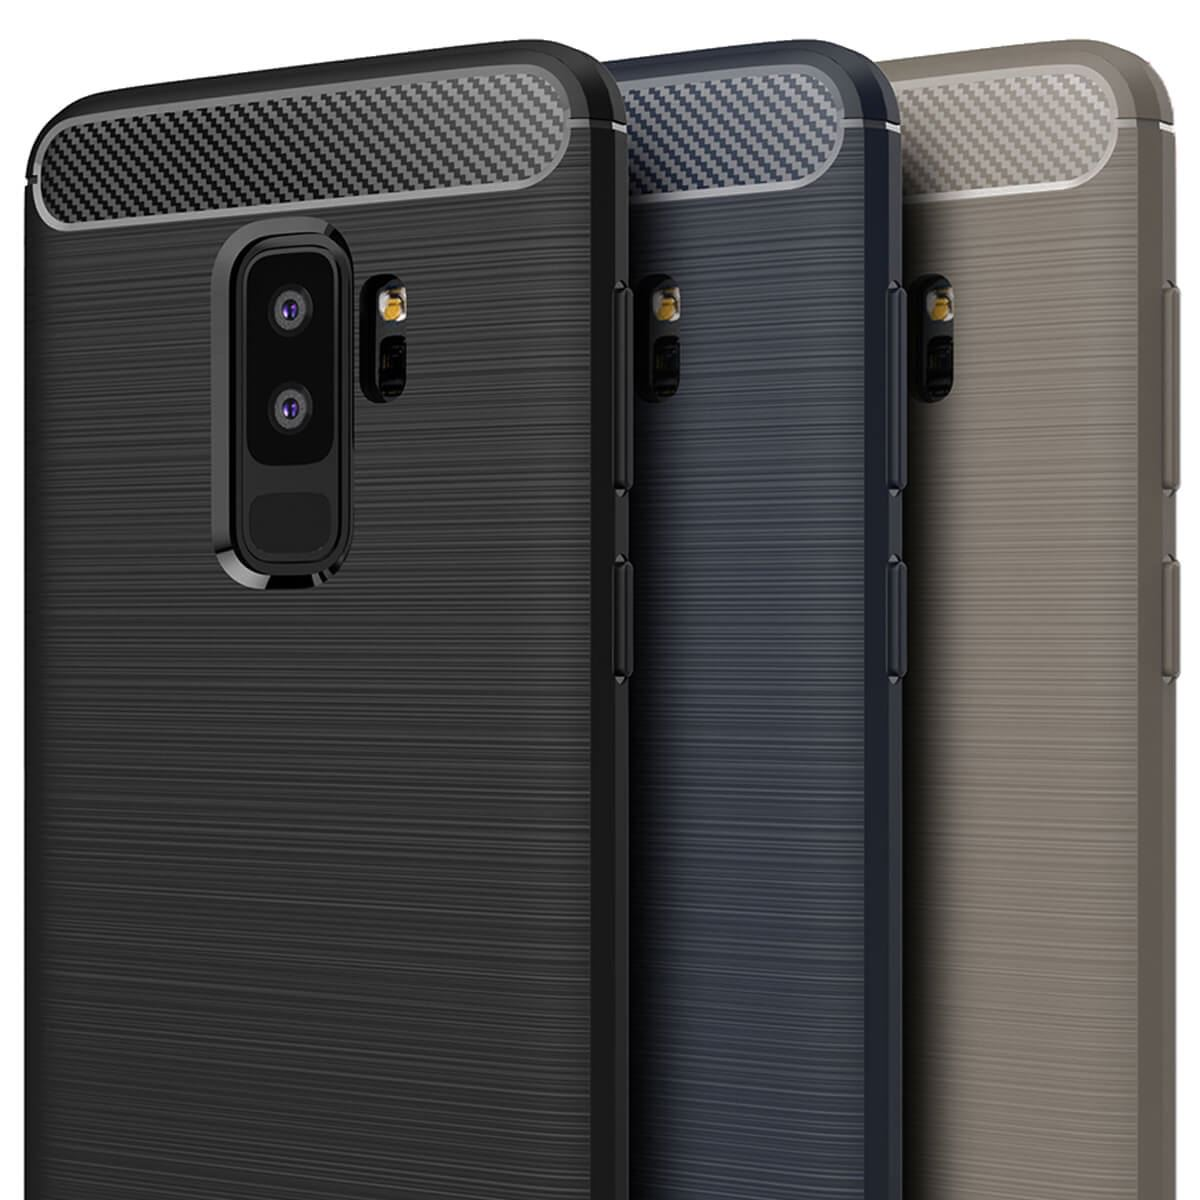 ShockProof-Rugged-Carbon-Case-For-Samsung-Galaxy-S9-amp-S9-Plus-Luxury-TPU-Cover thumbnail 4